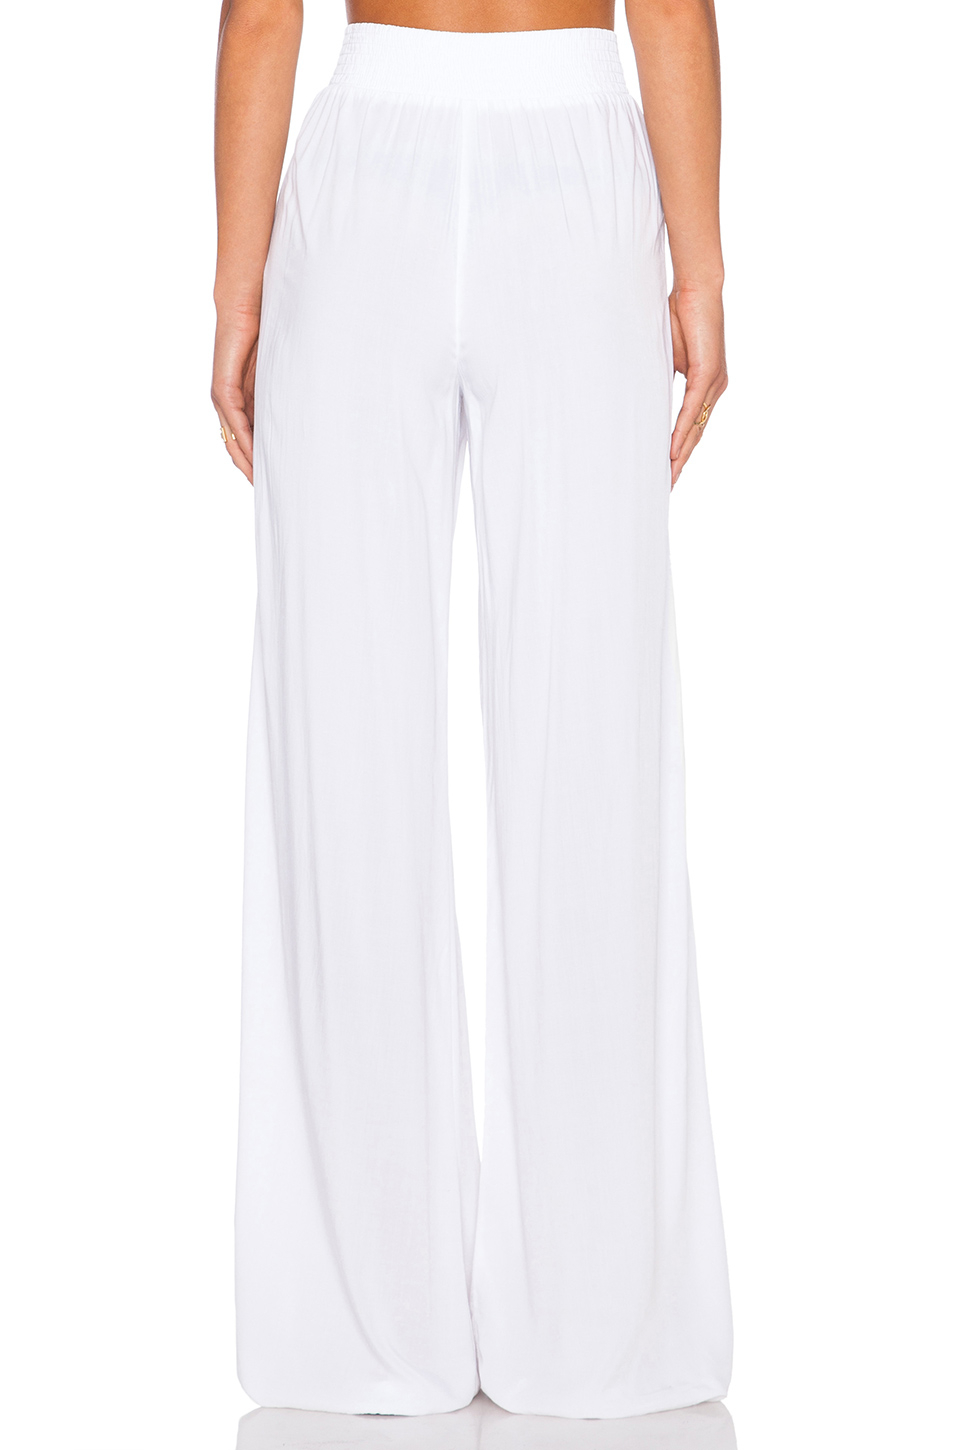 High waist wide leg trousers are a timeless classic for women of all ages. They emphasize comfort without losing style. These trousers, or pants as they are .